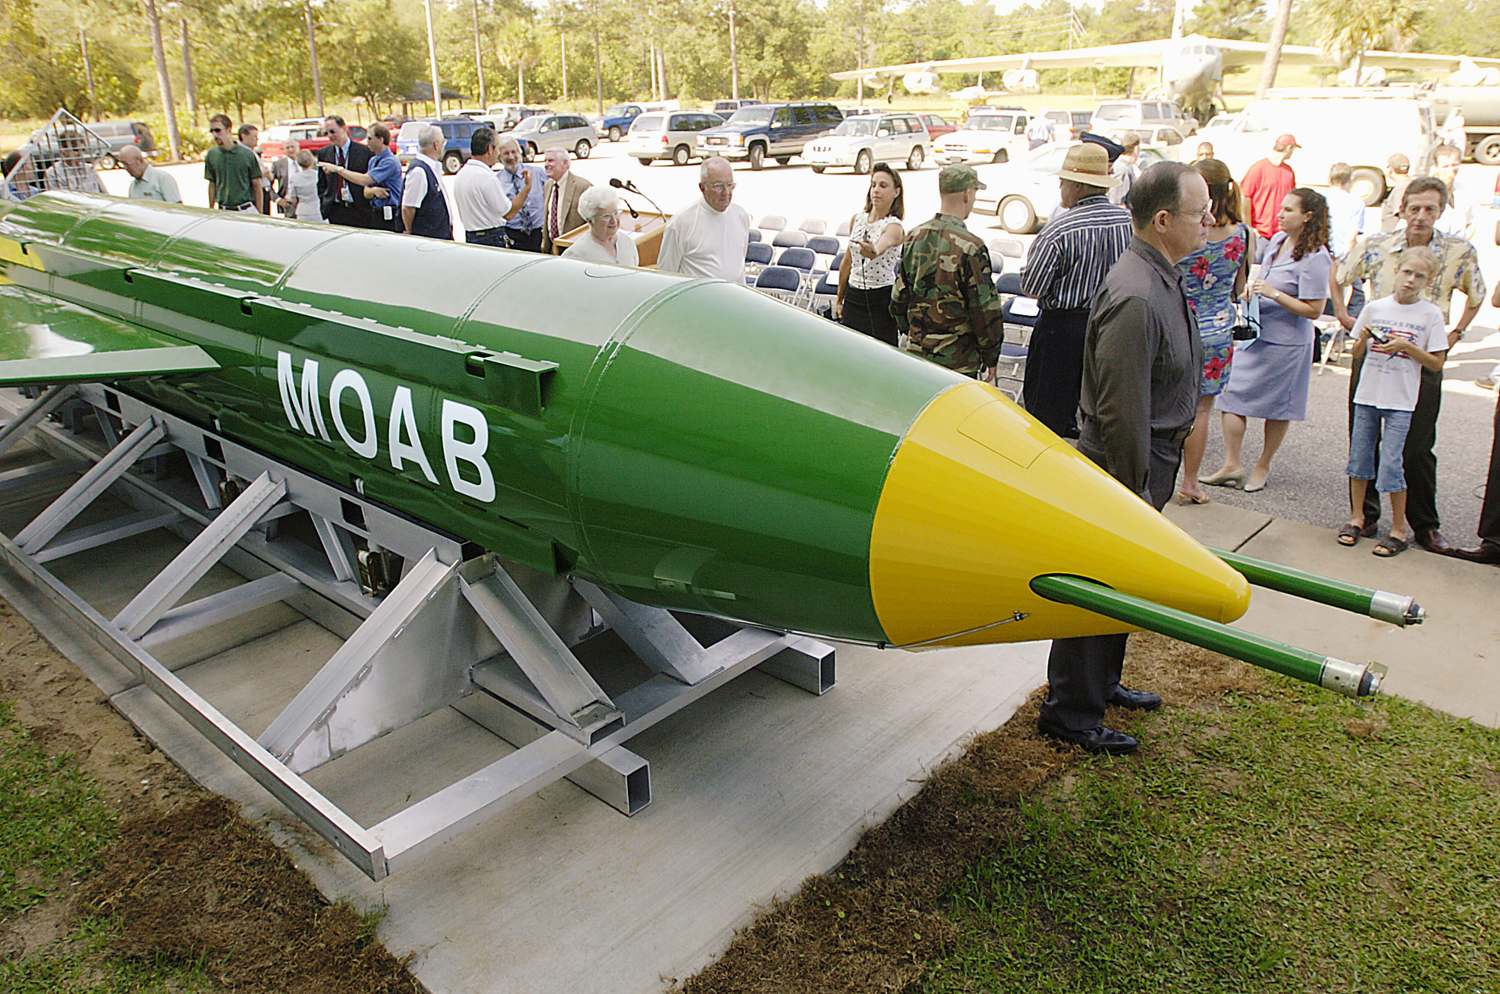 A GBU-43/B bomb is on display at Eglin Air Force Base in Florida in this May 2004 photo. (Northwest Florida Daily News via AP)